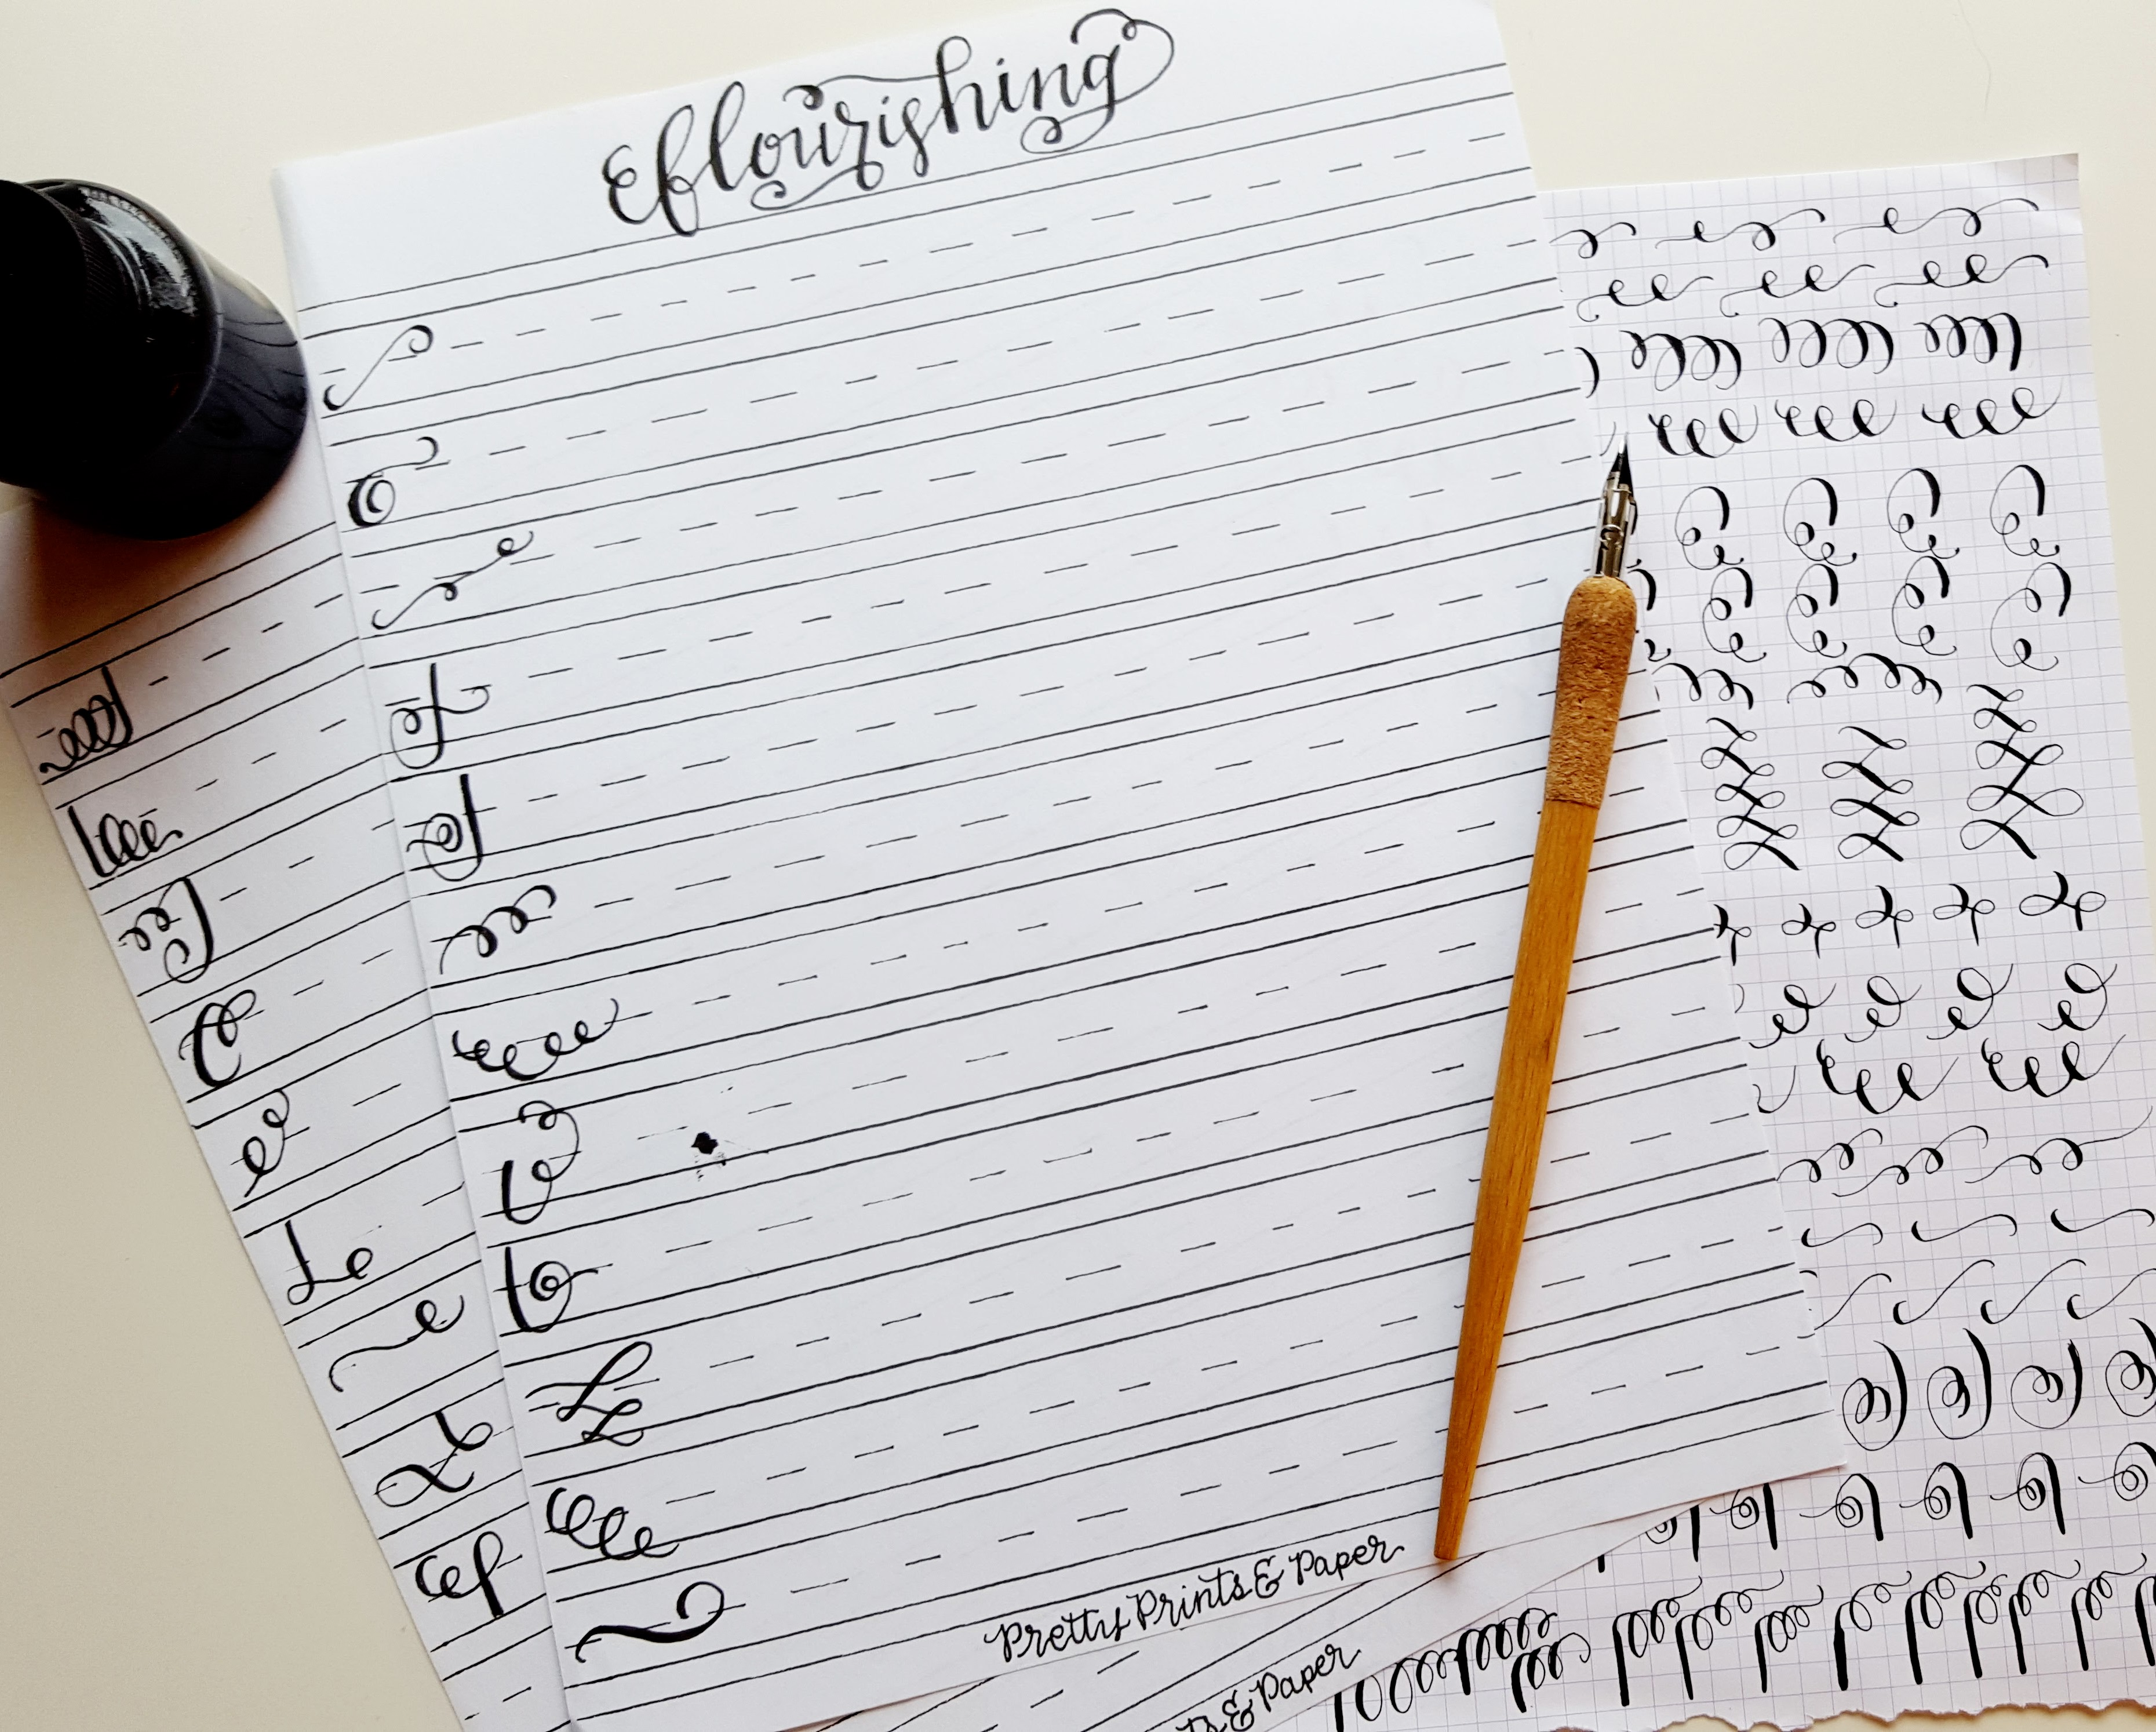 photograph about Free Calligraphy Worksheets Printable identified as How toward: Calligraphy Flourishes + Totally free Printable Attractive